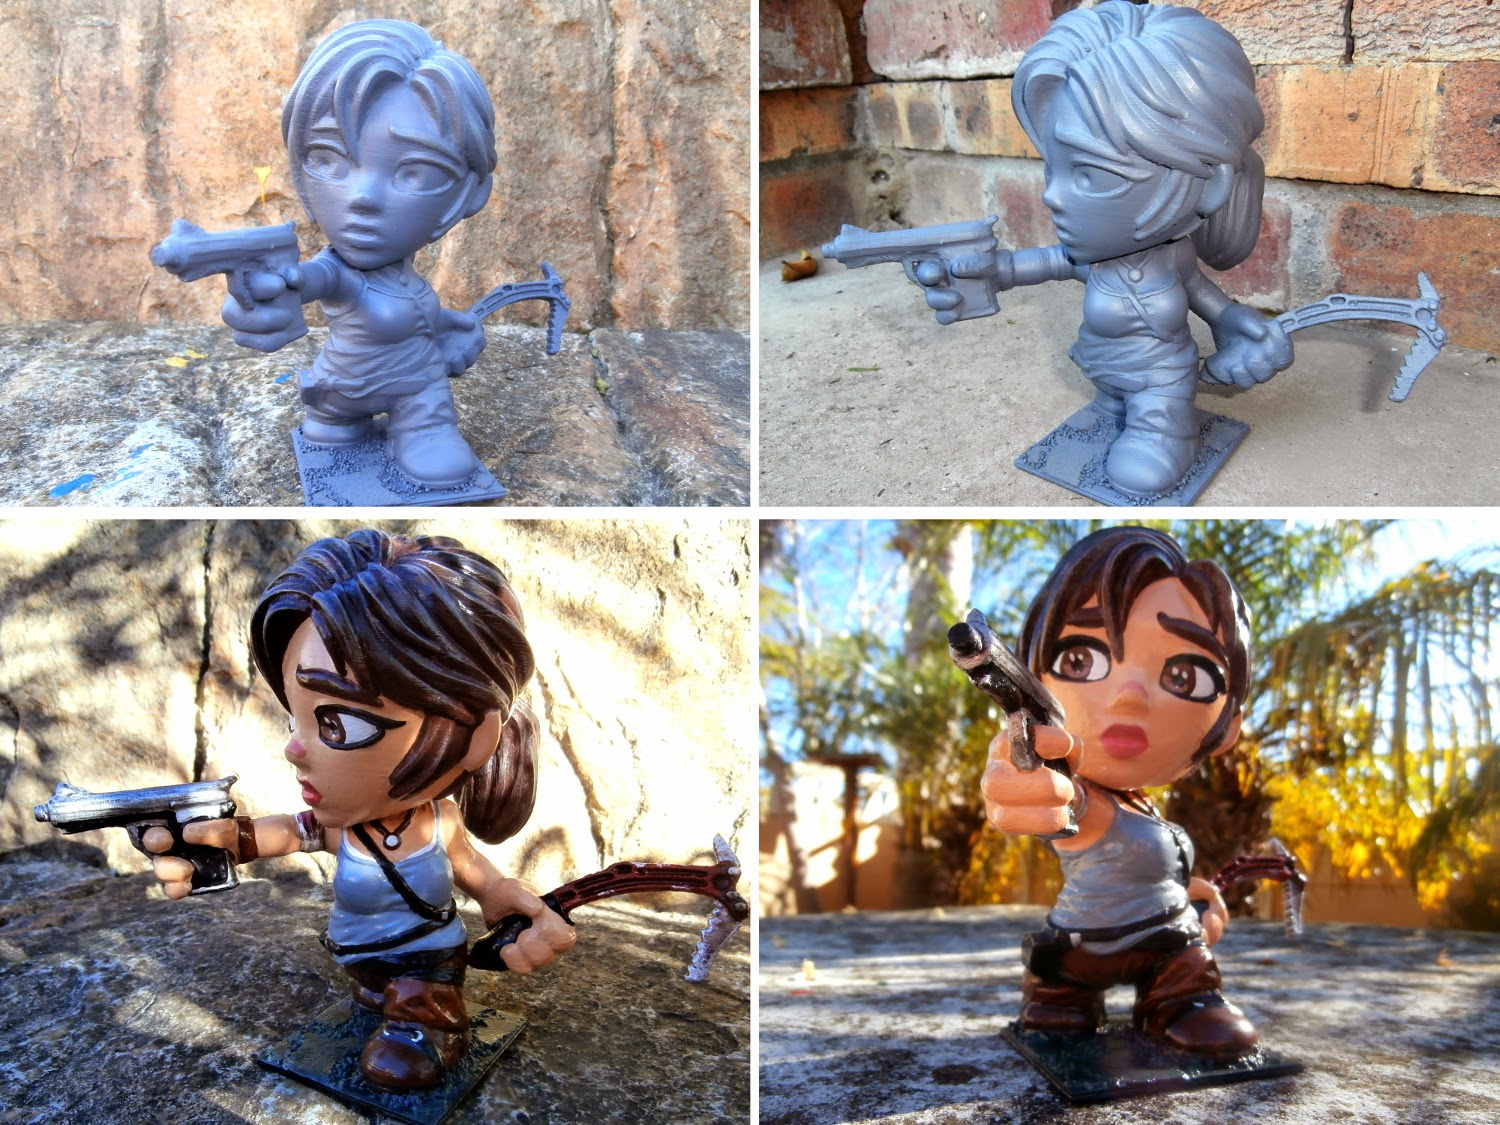 Lara Croft 3D Printed and Painted